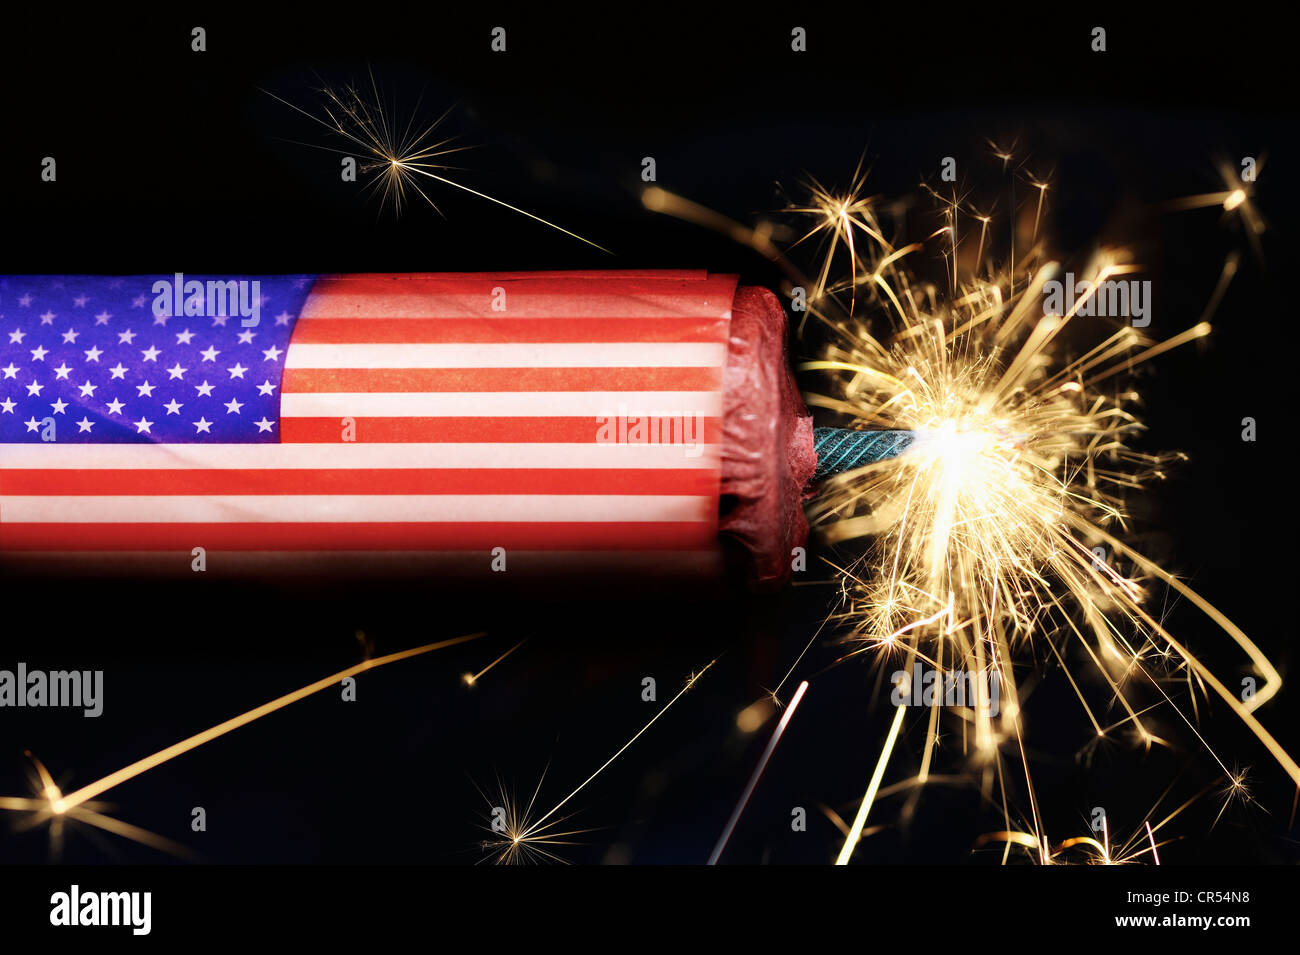 Stick of dynamite with a flag of U.S.A. with a burning fuse, symbolic image of the U.S. national debt - Stock Image